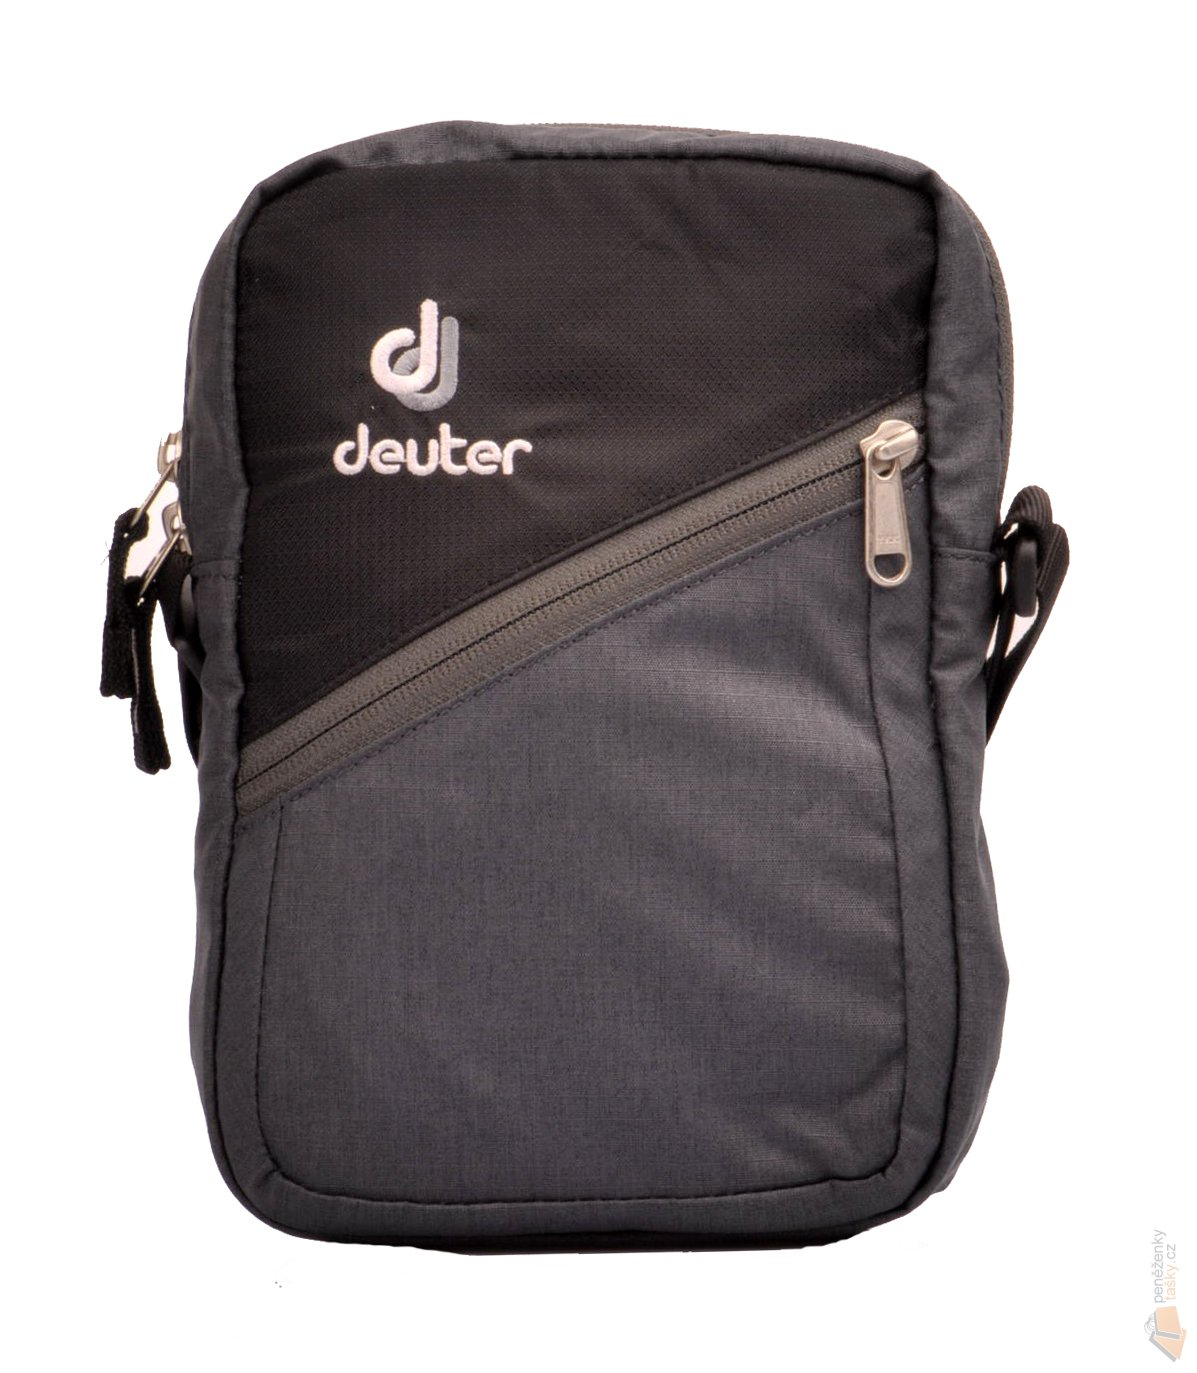 dd8c4db47 Deuter taštička Deuter Escape II anthracite-black : Kabelky ...